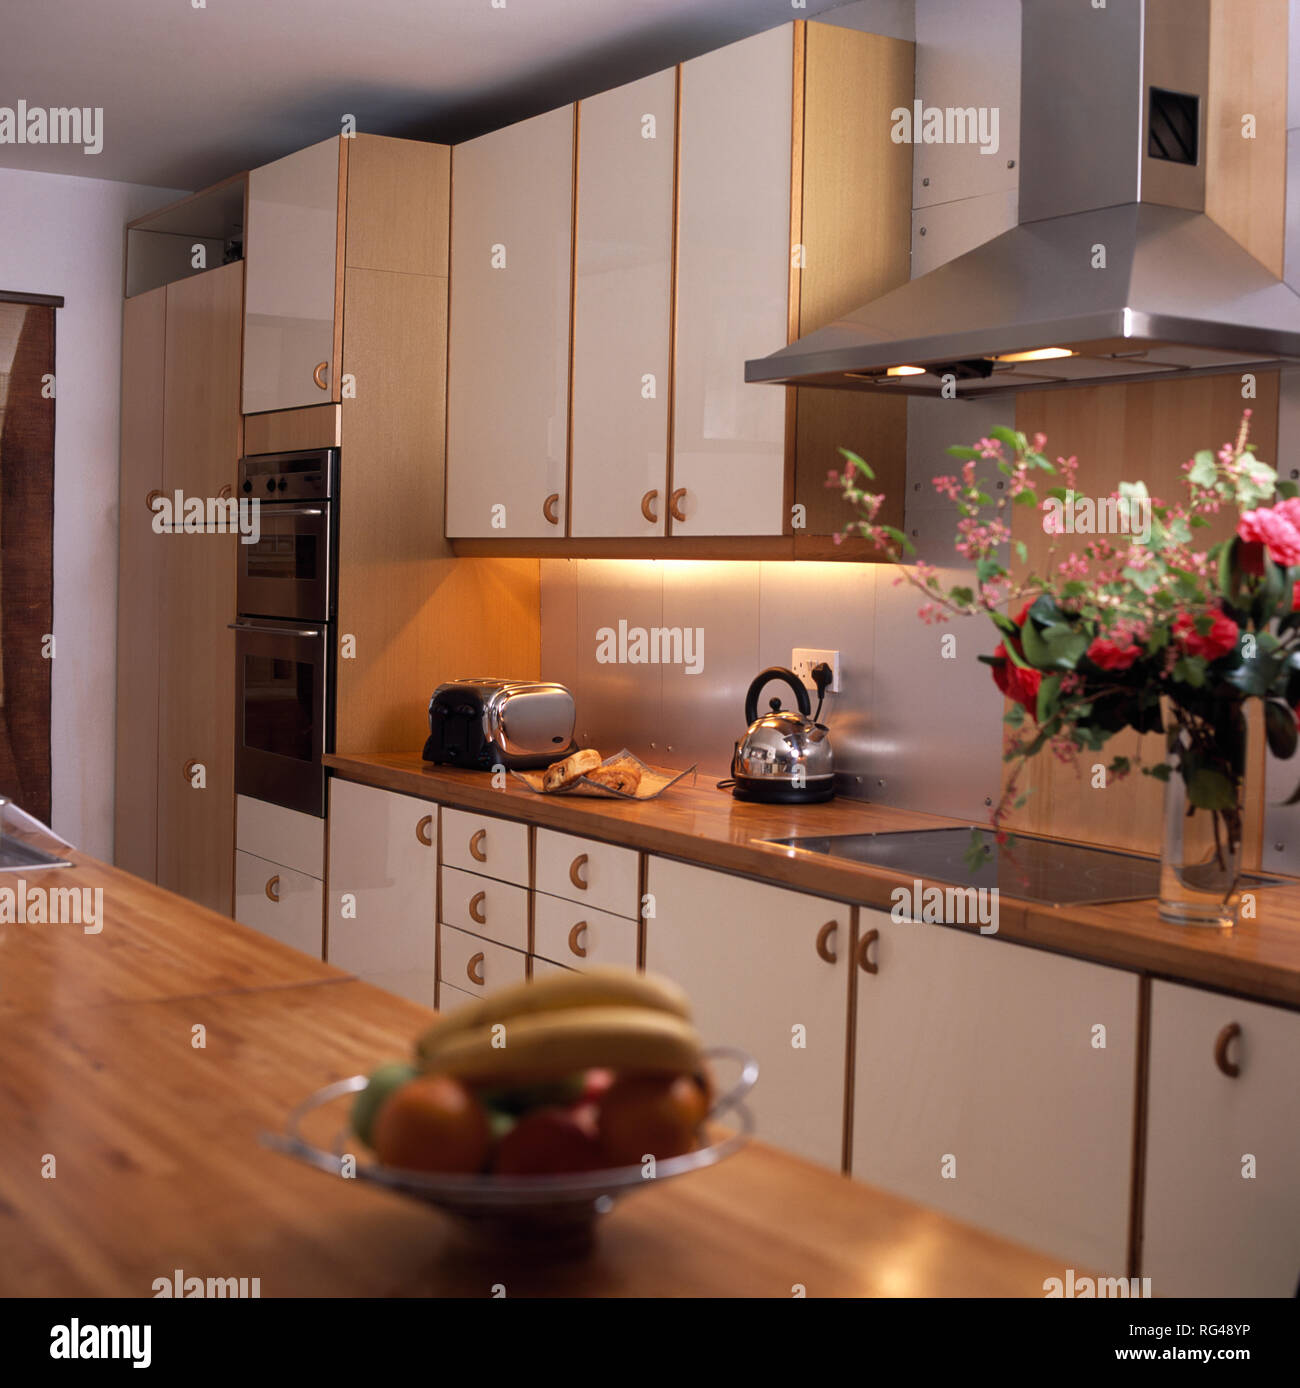 Lighting Below Cabinets In Townhouse Kitchen Stock Photo 233664138